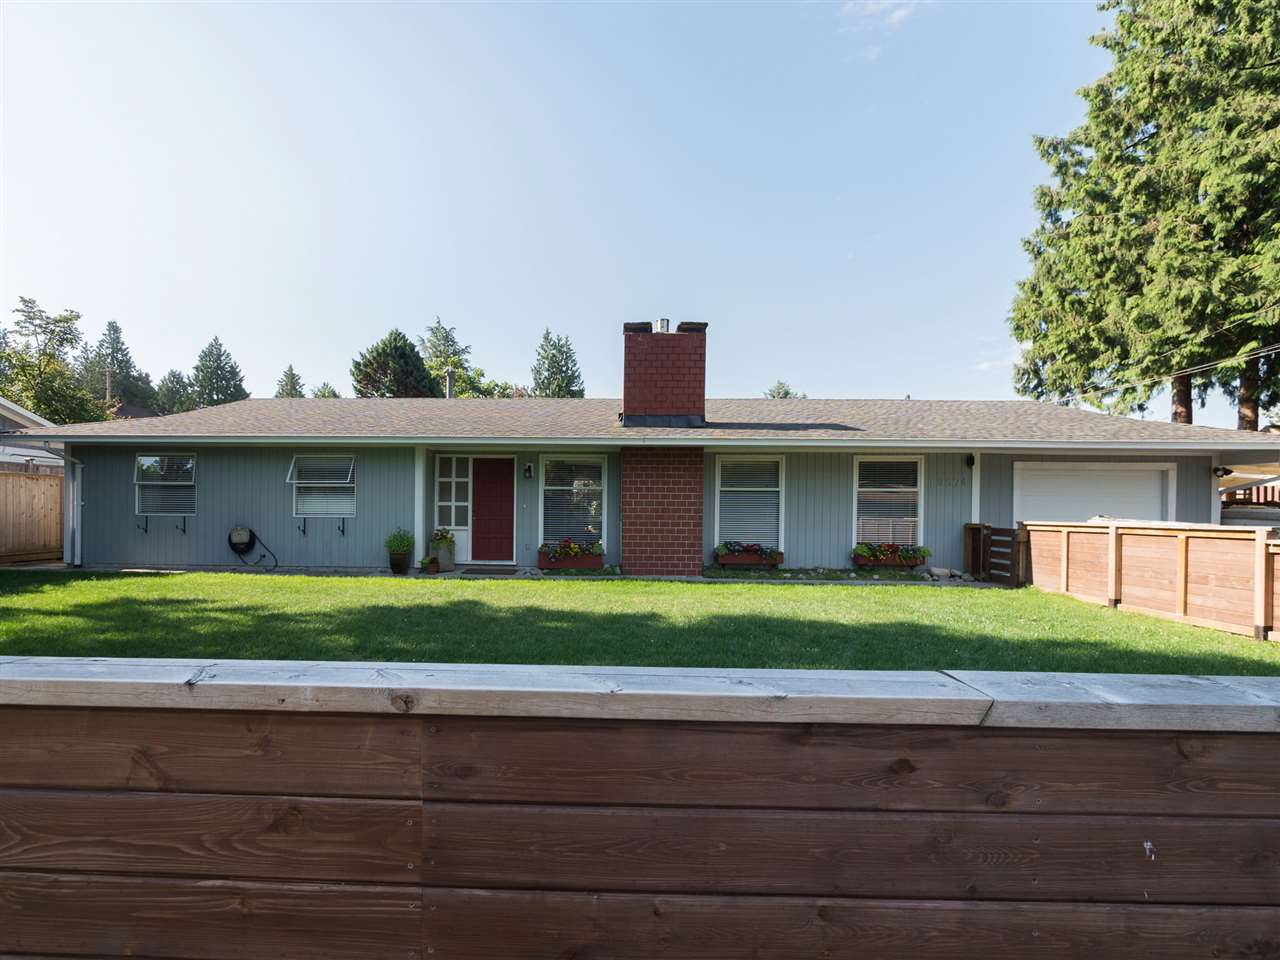 Main Photo: 19574 117B Avenue in Pitt Meadows: South Meadows House for sale : MLS®# R2281991